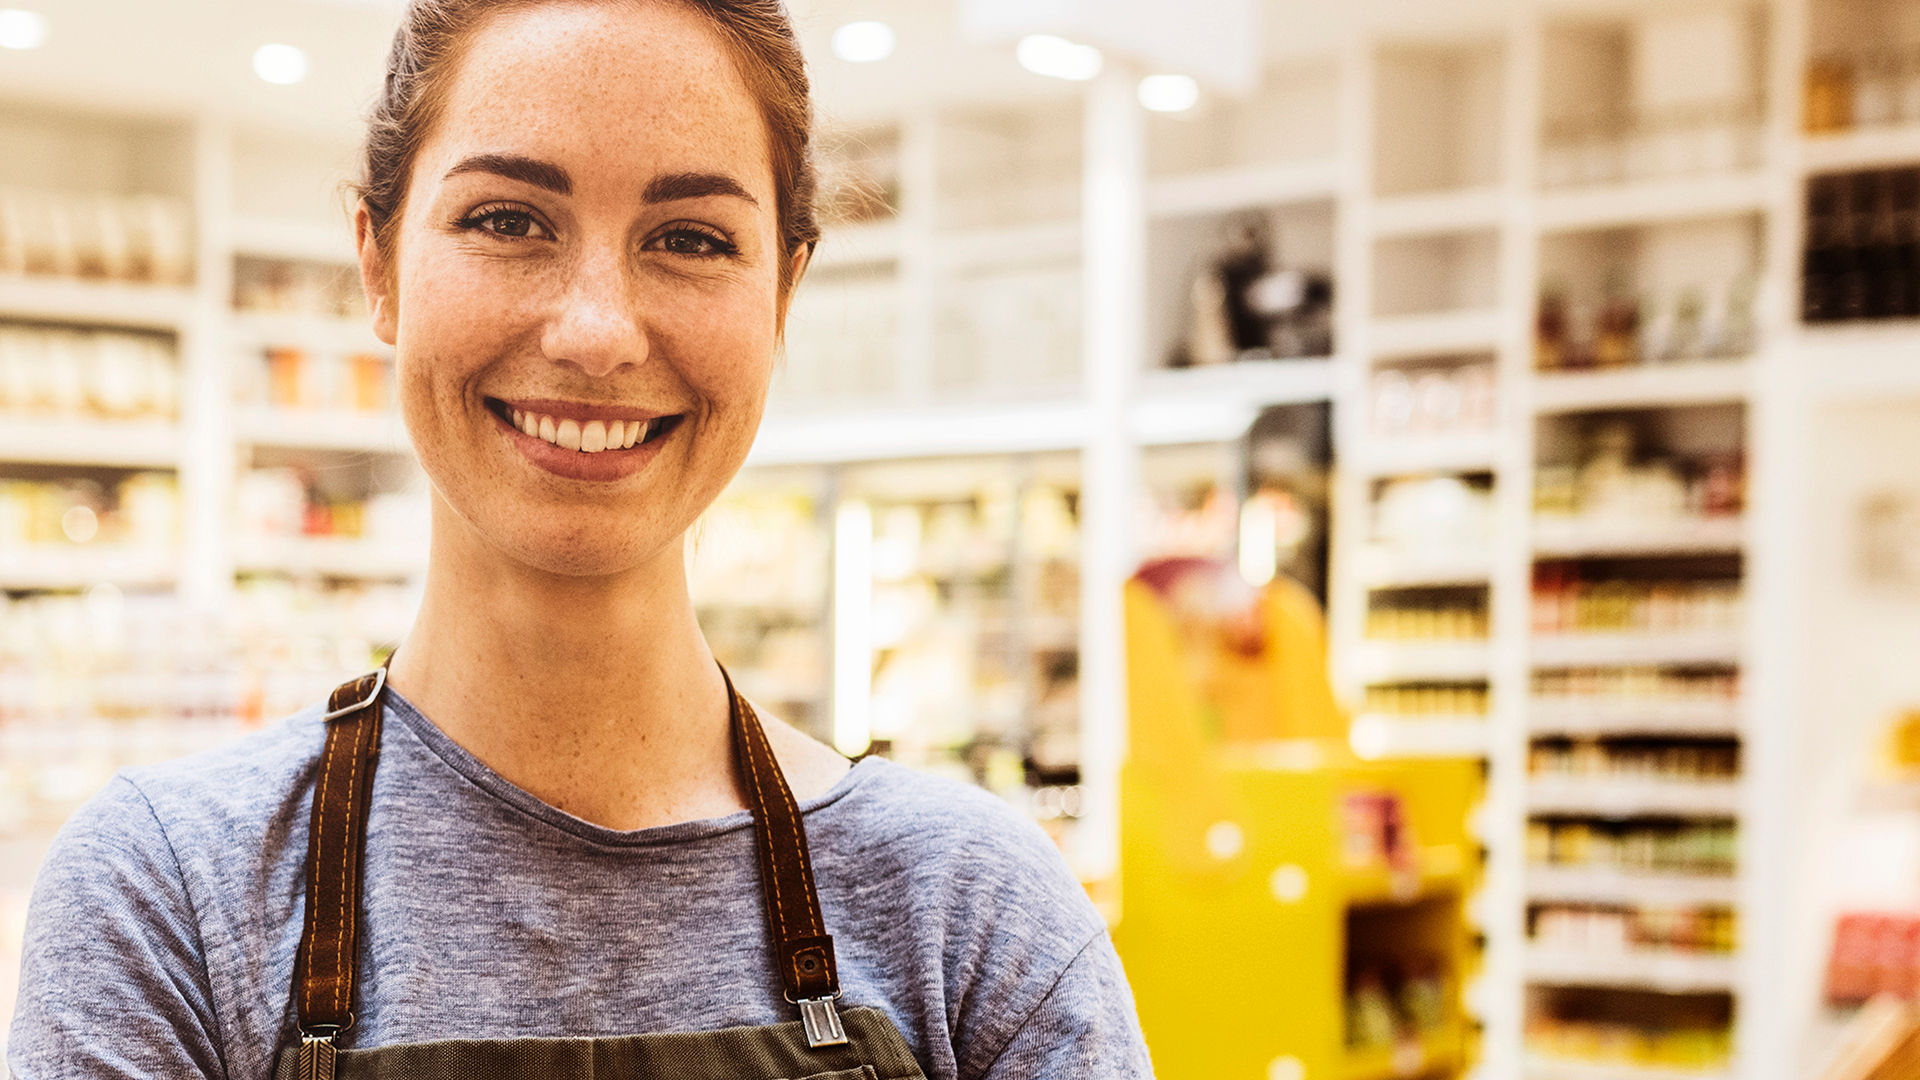 A smiling shop worker wearing a grey shirt and brown apron